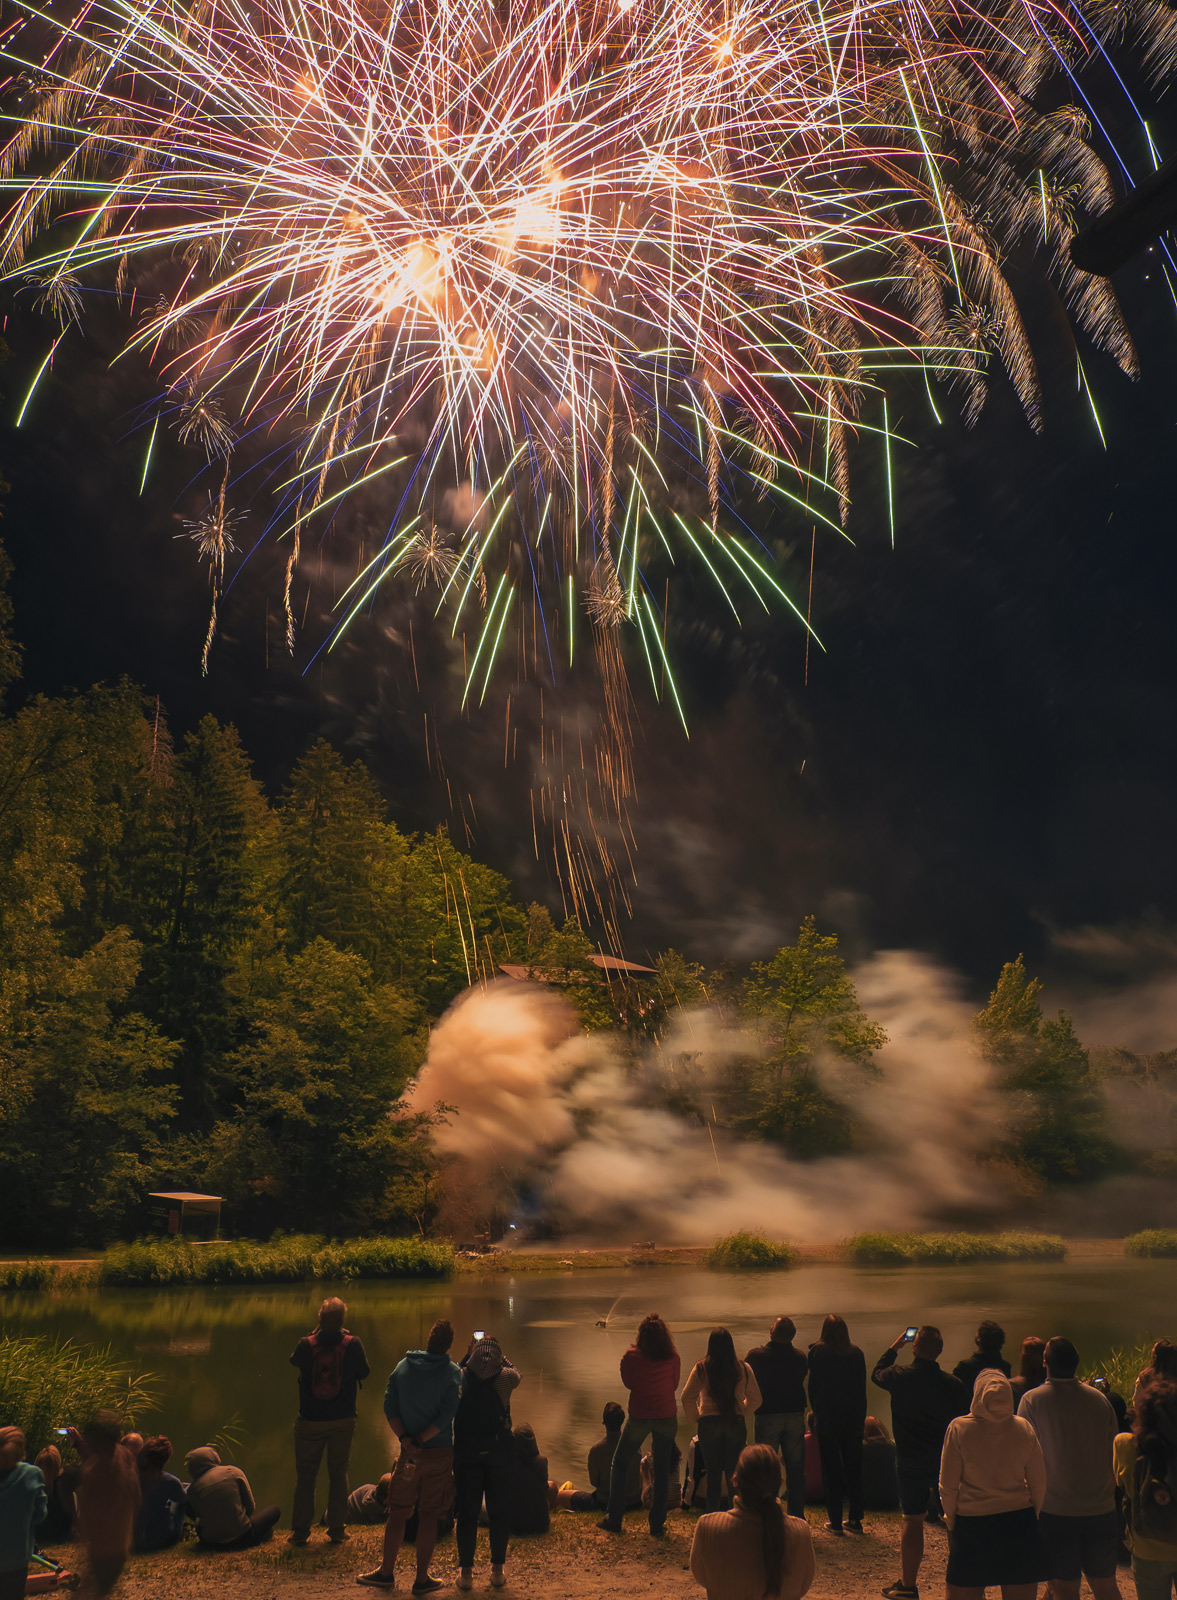 Fireworks 12, Les Houches, Chamonix, France, town, village, firework, display, epic, fantastic, lake, Bastille Day, photo